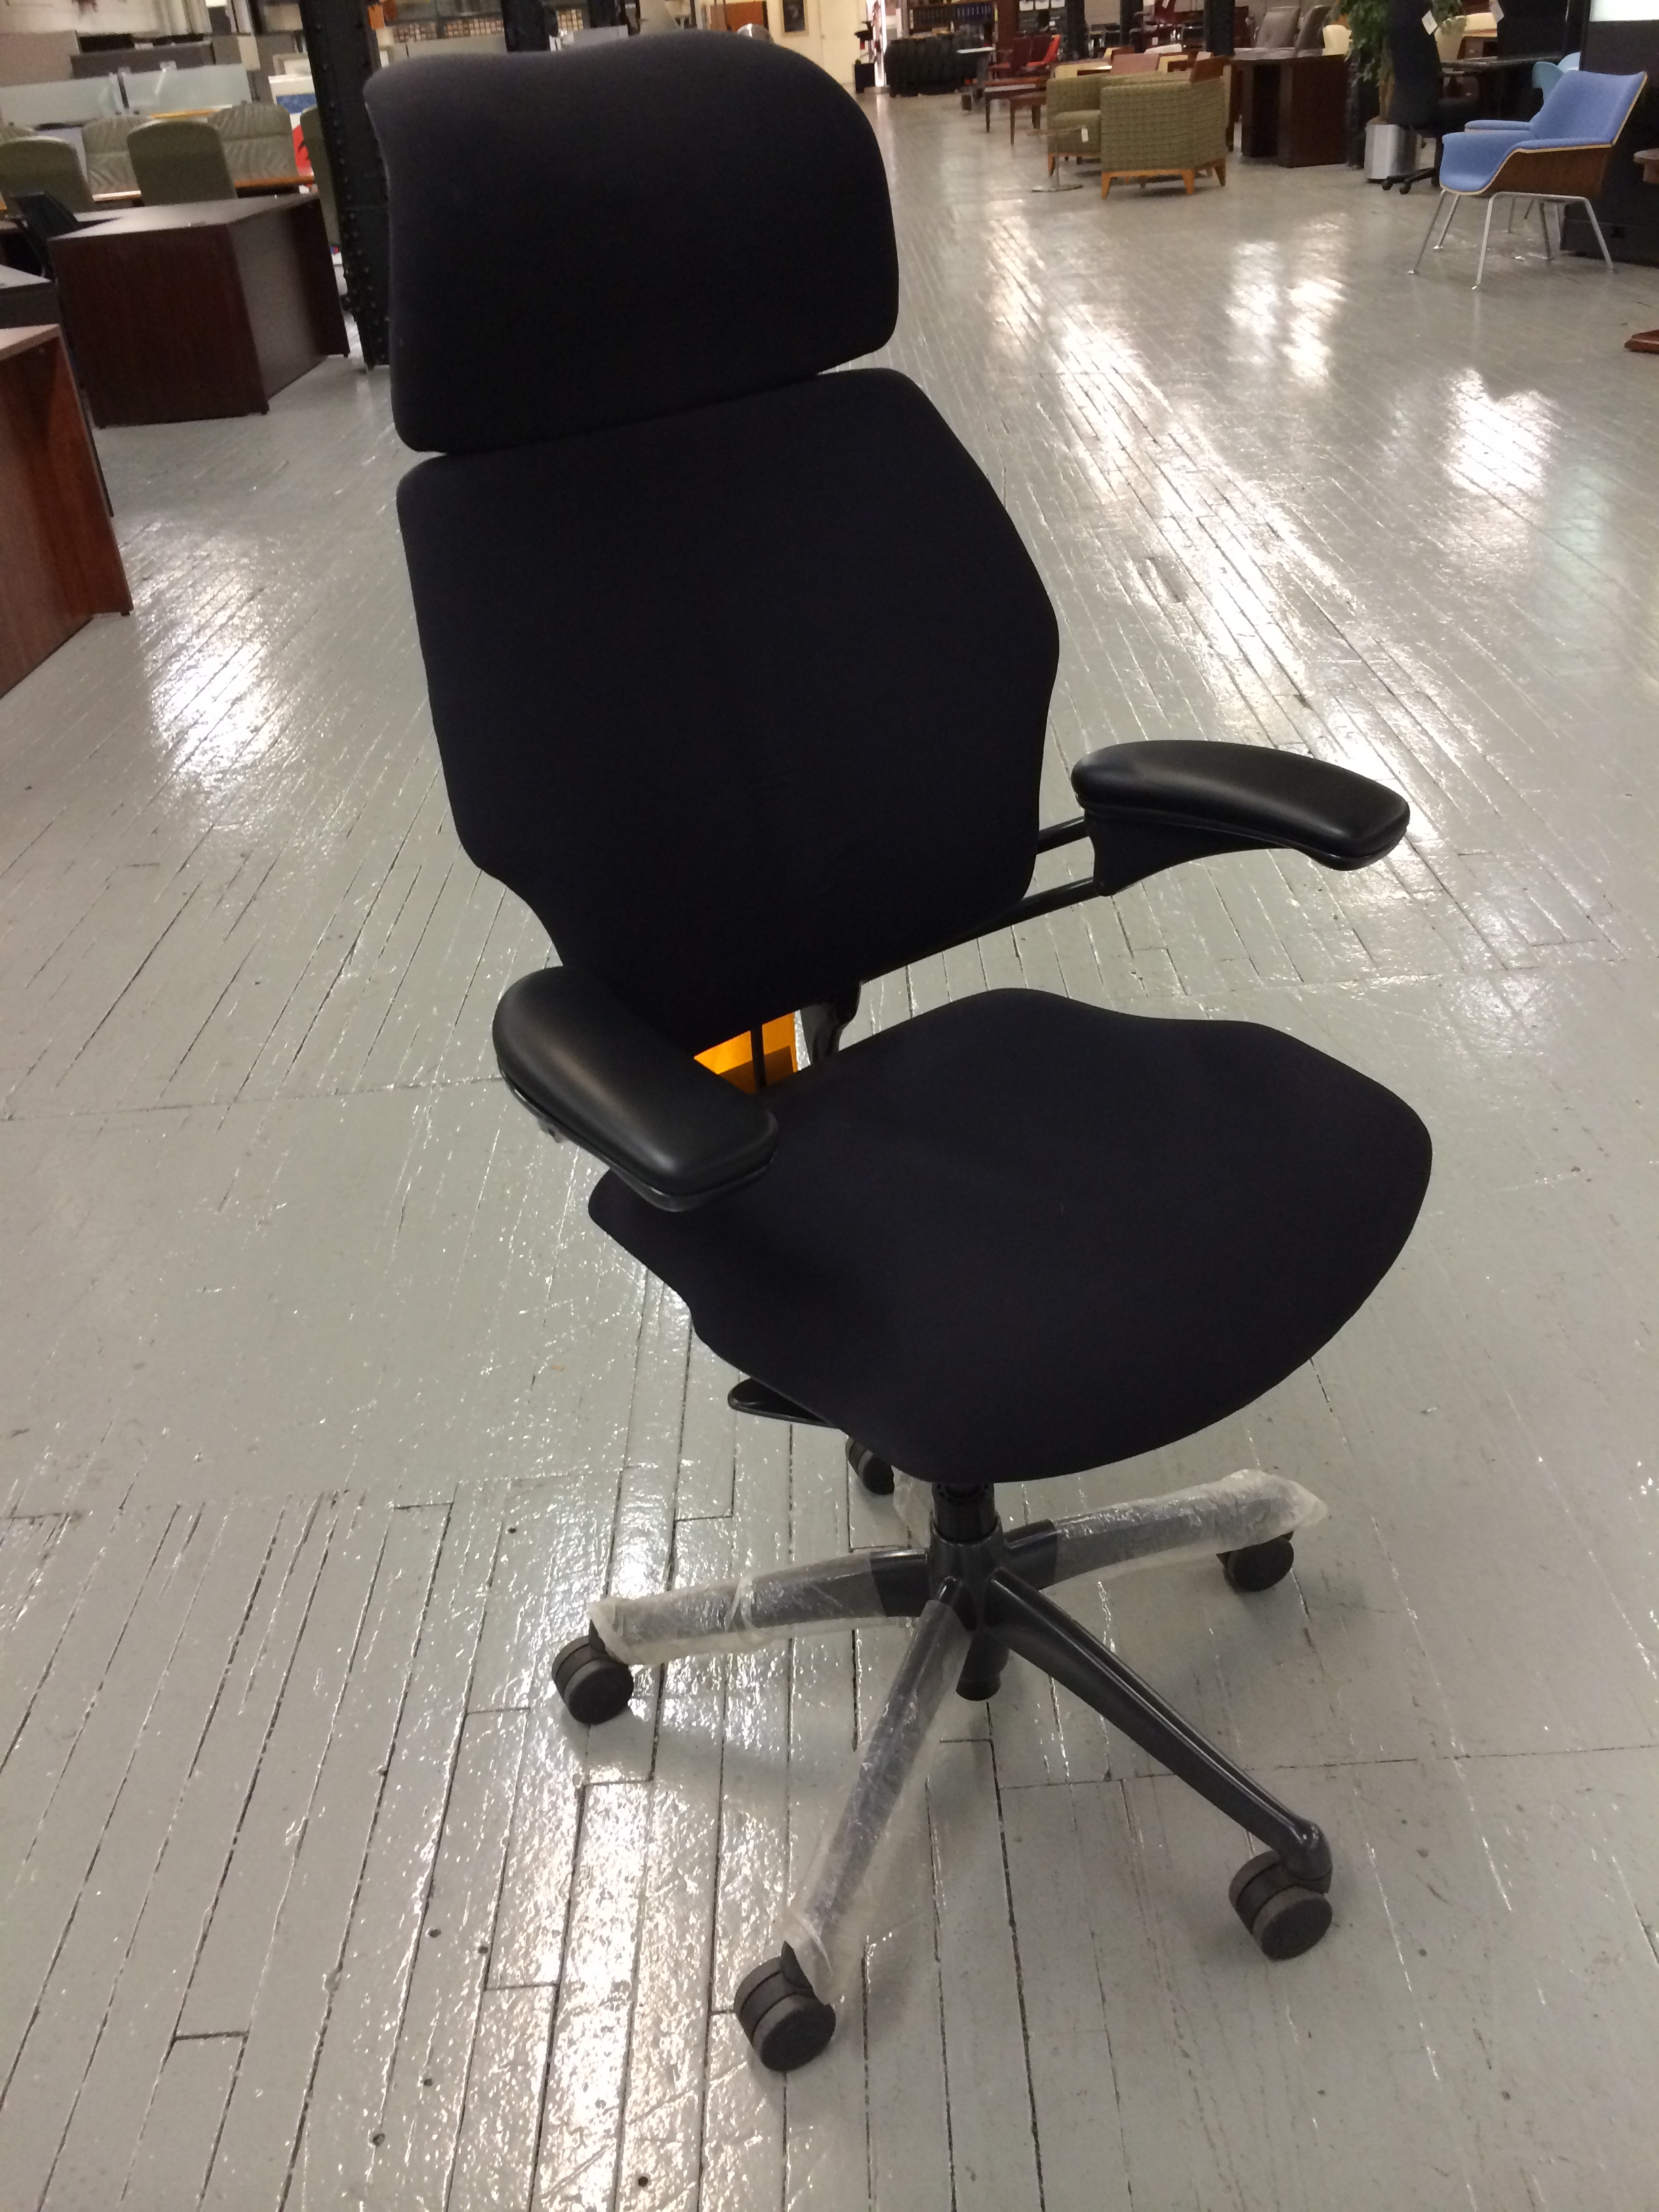 Swedish Ergonomic Chair | Humanscale Office Chair | Humanscale Freedom Chair